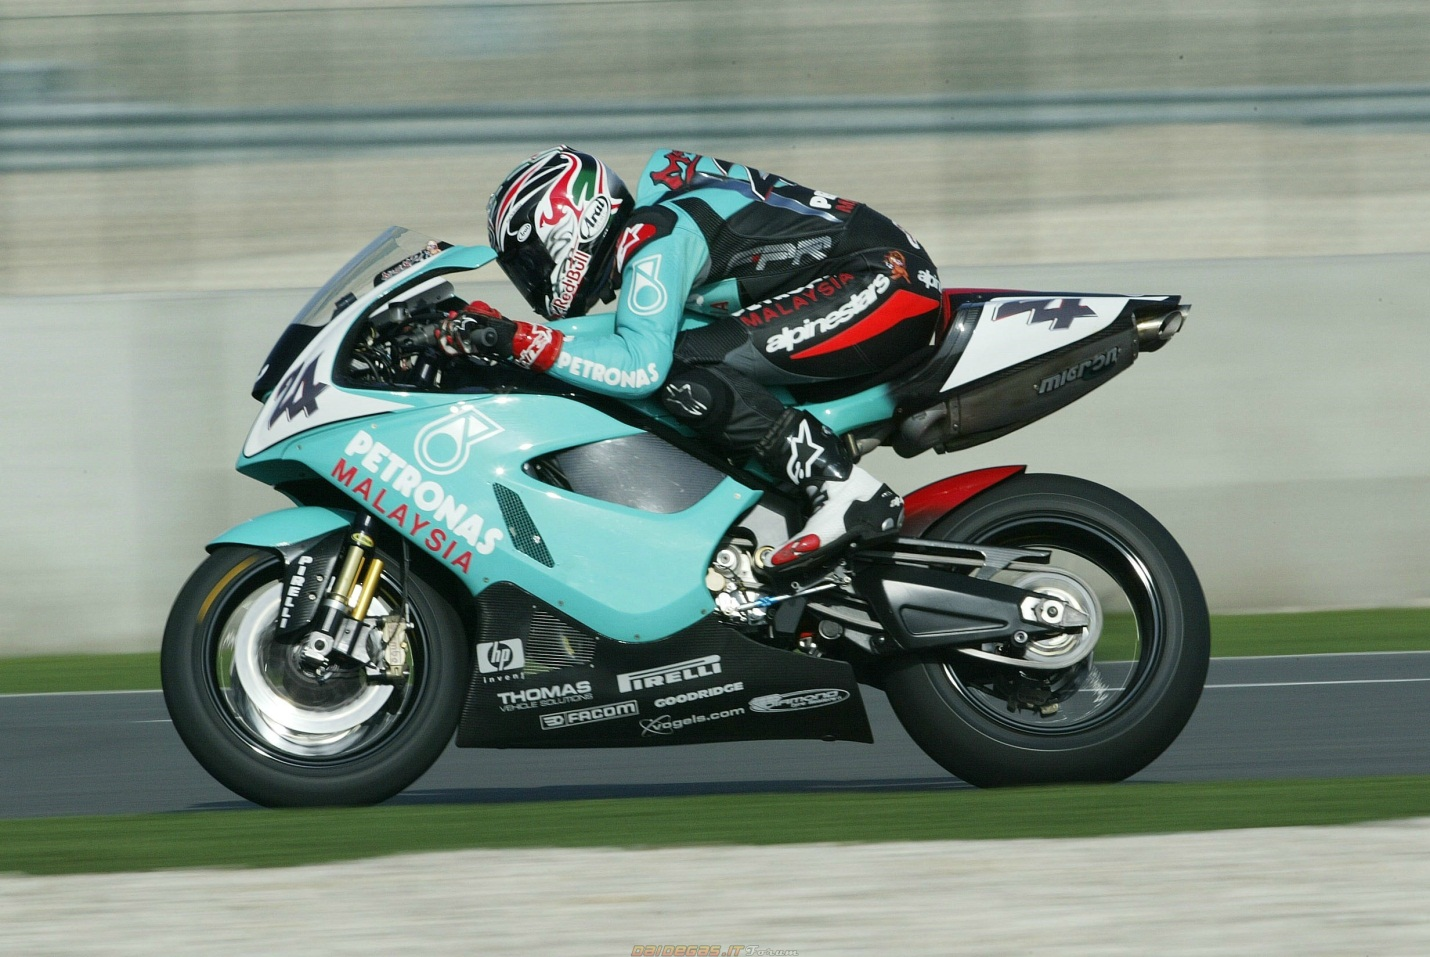 Petronas FP1 2004 images #119085